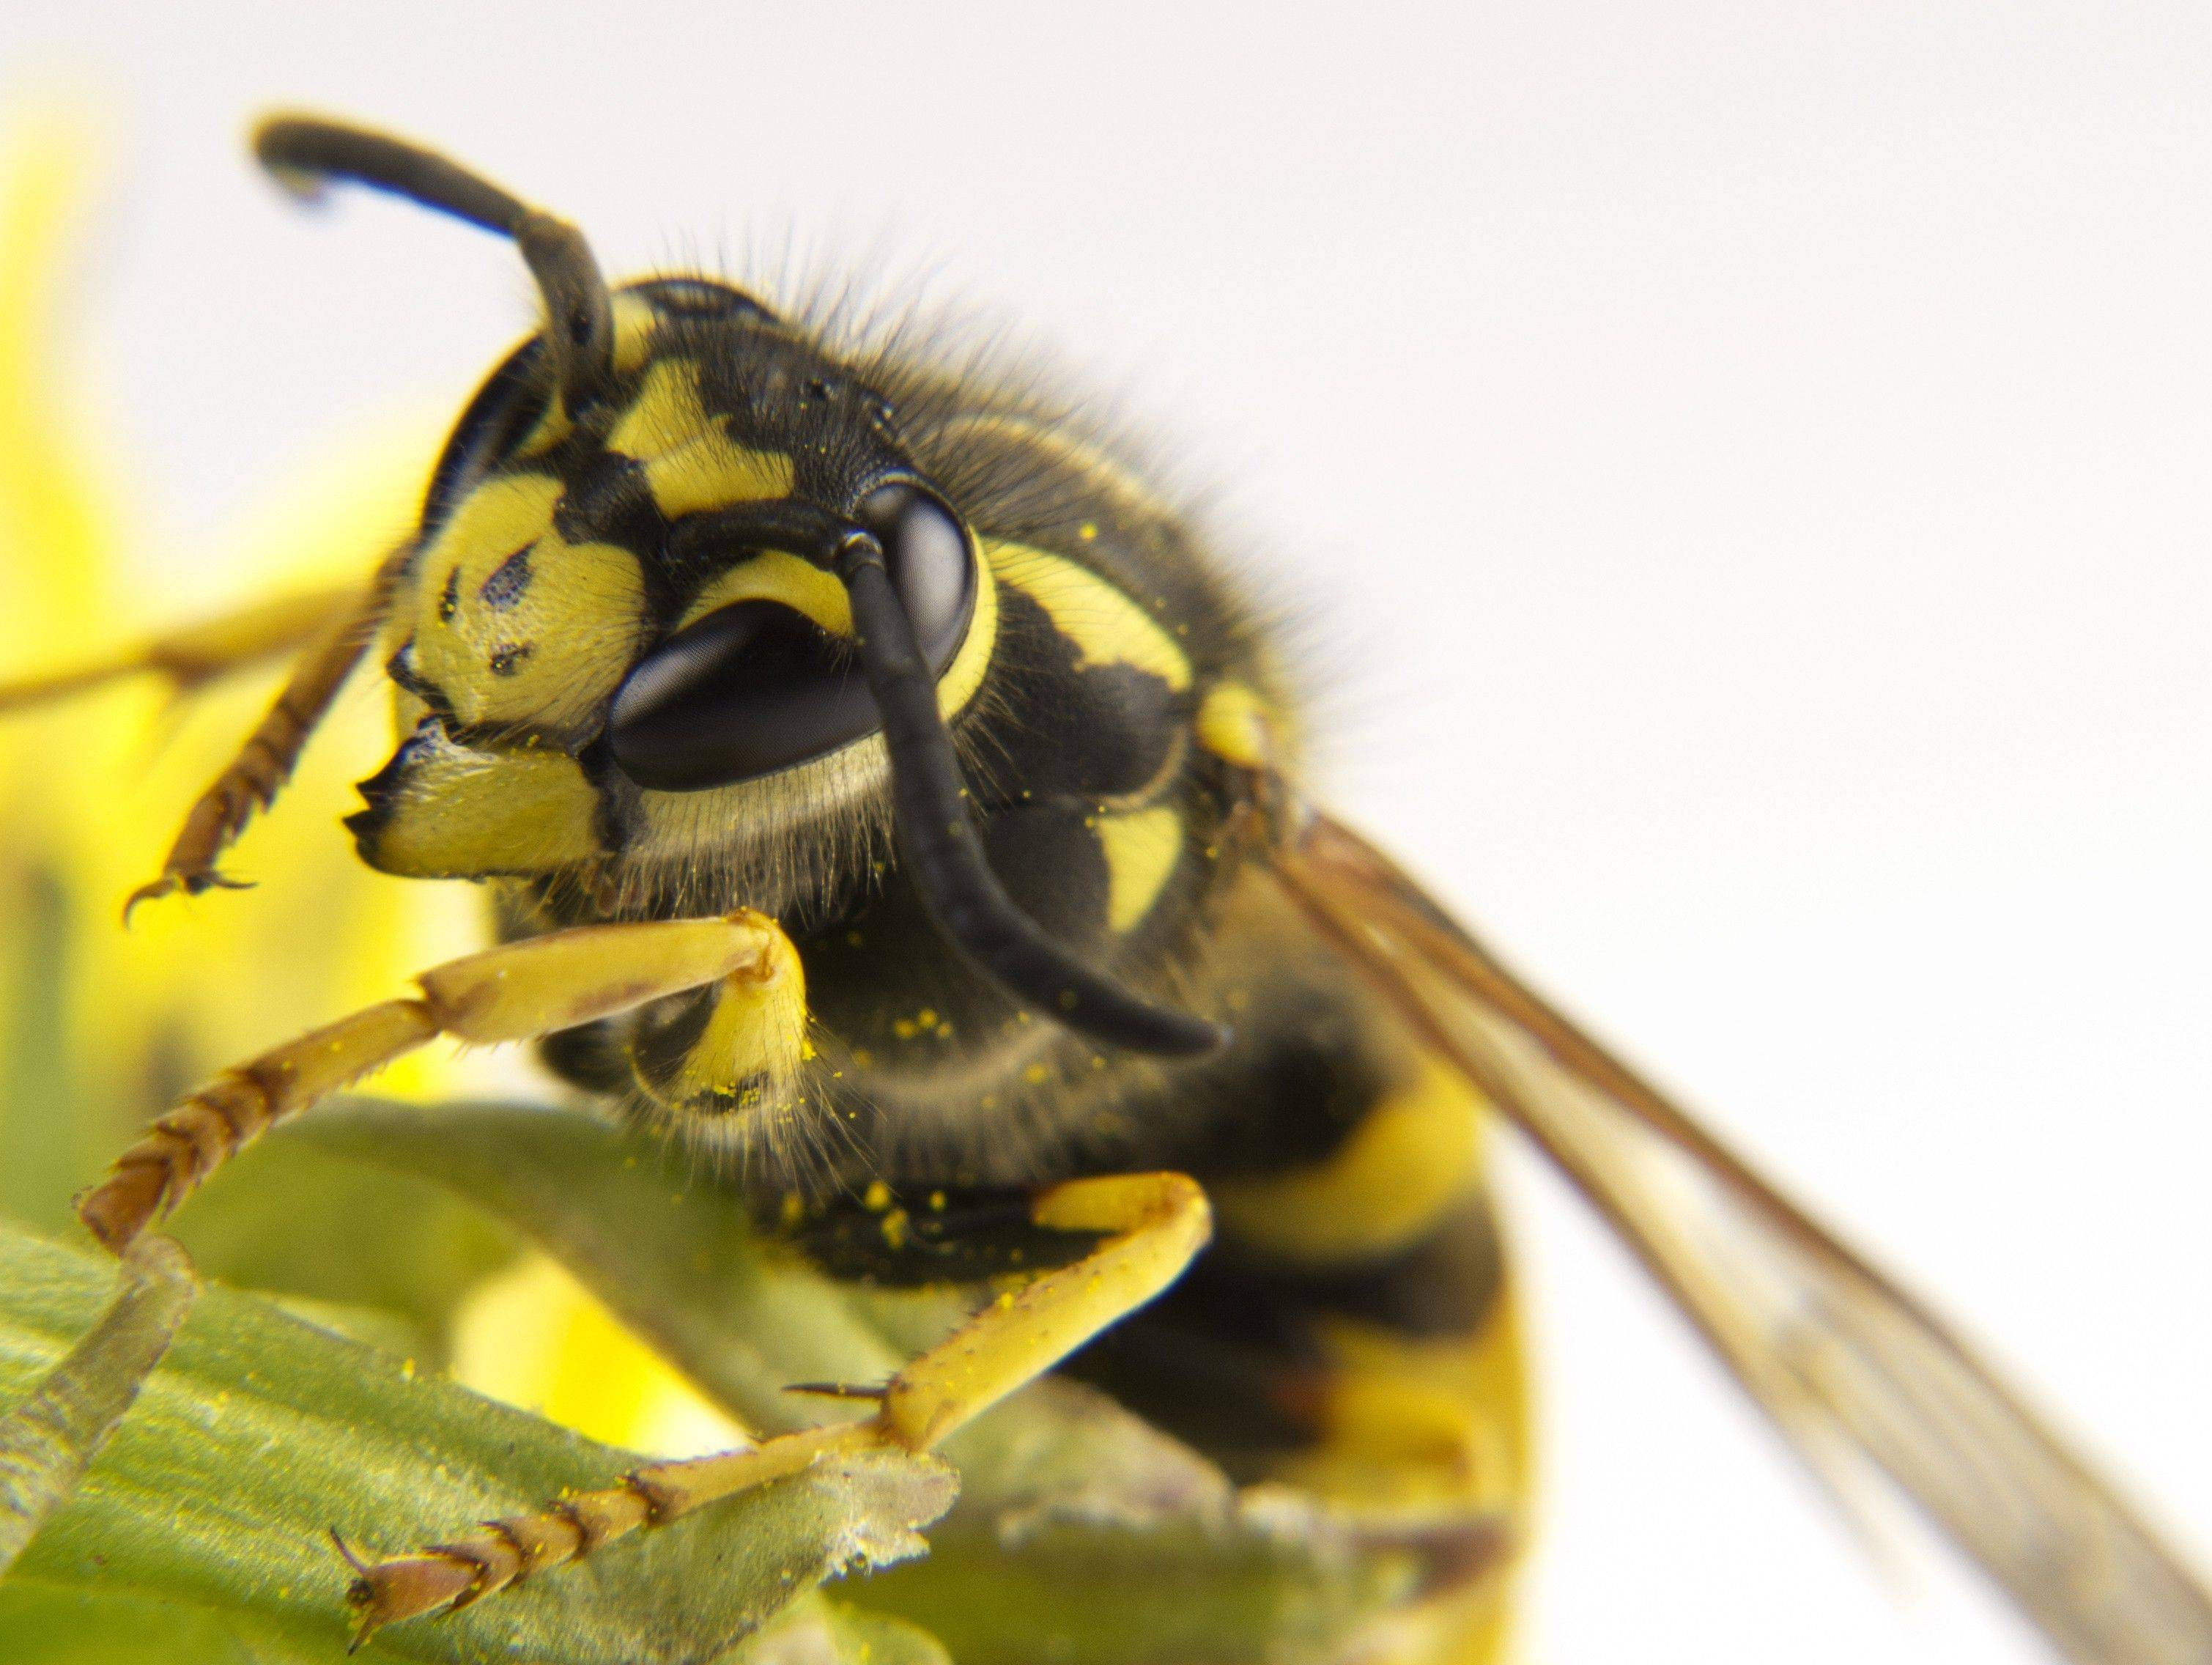 Being stung by a yellow wasp can cause a severe allergic reaction in some people.